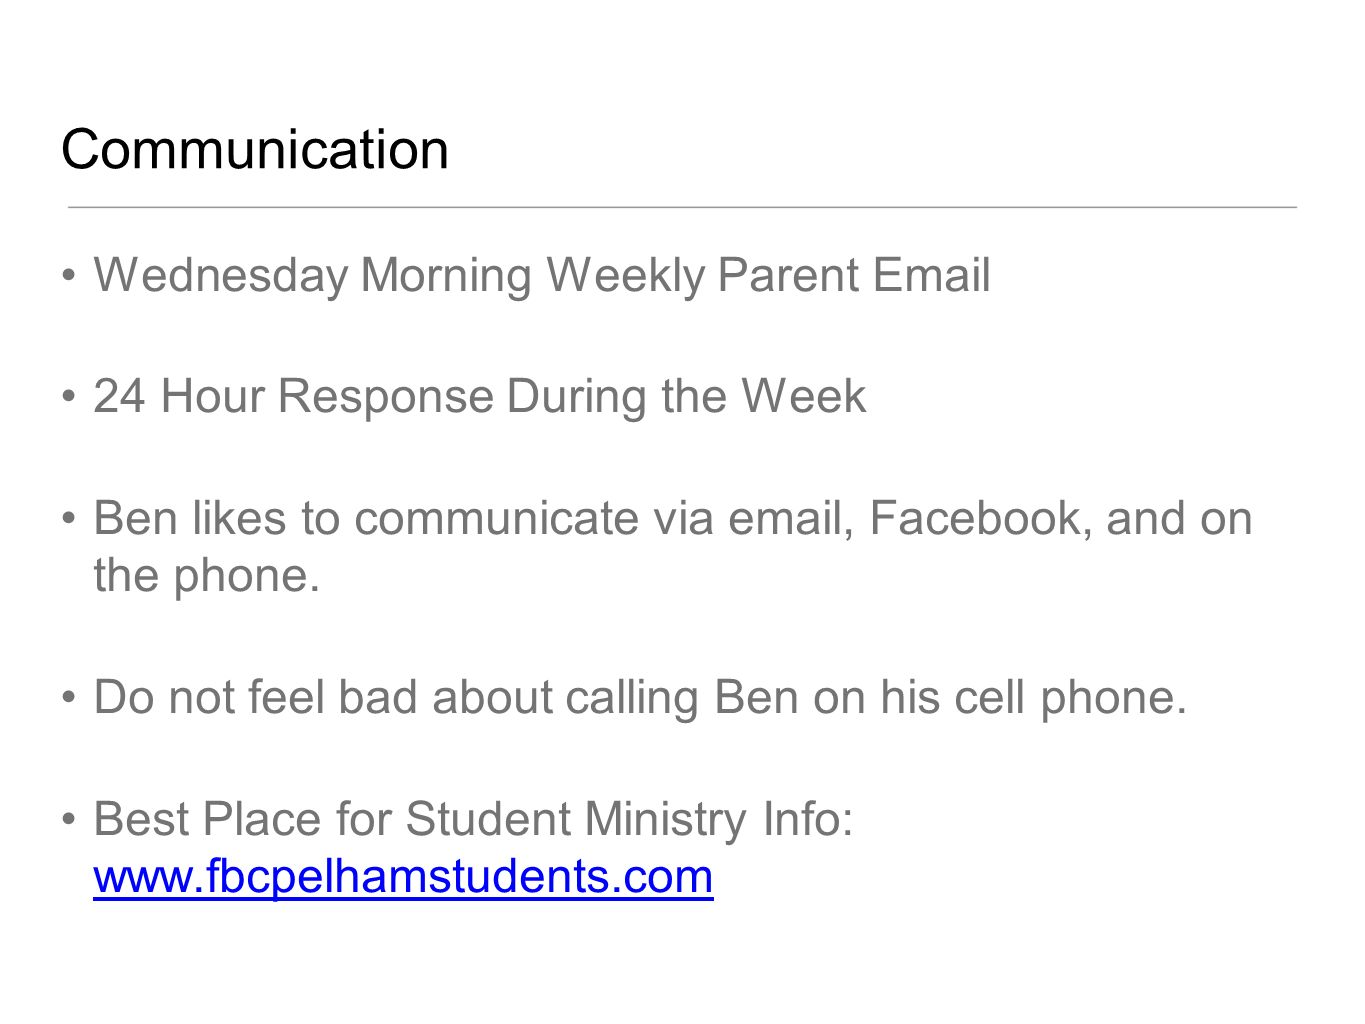 Communication Wednesday Morning Weekly Parent  24 Hour Response During the Week Ben likes to communicate via  , Facebook, and on the phone.